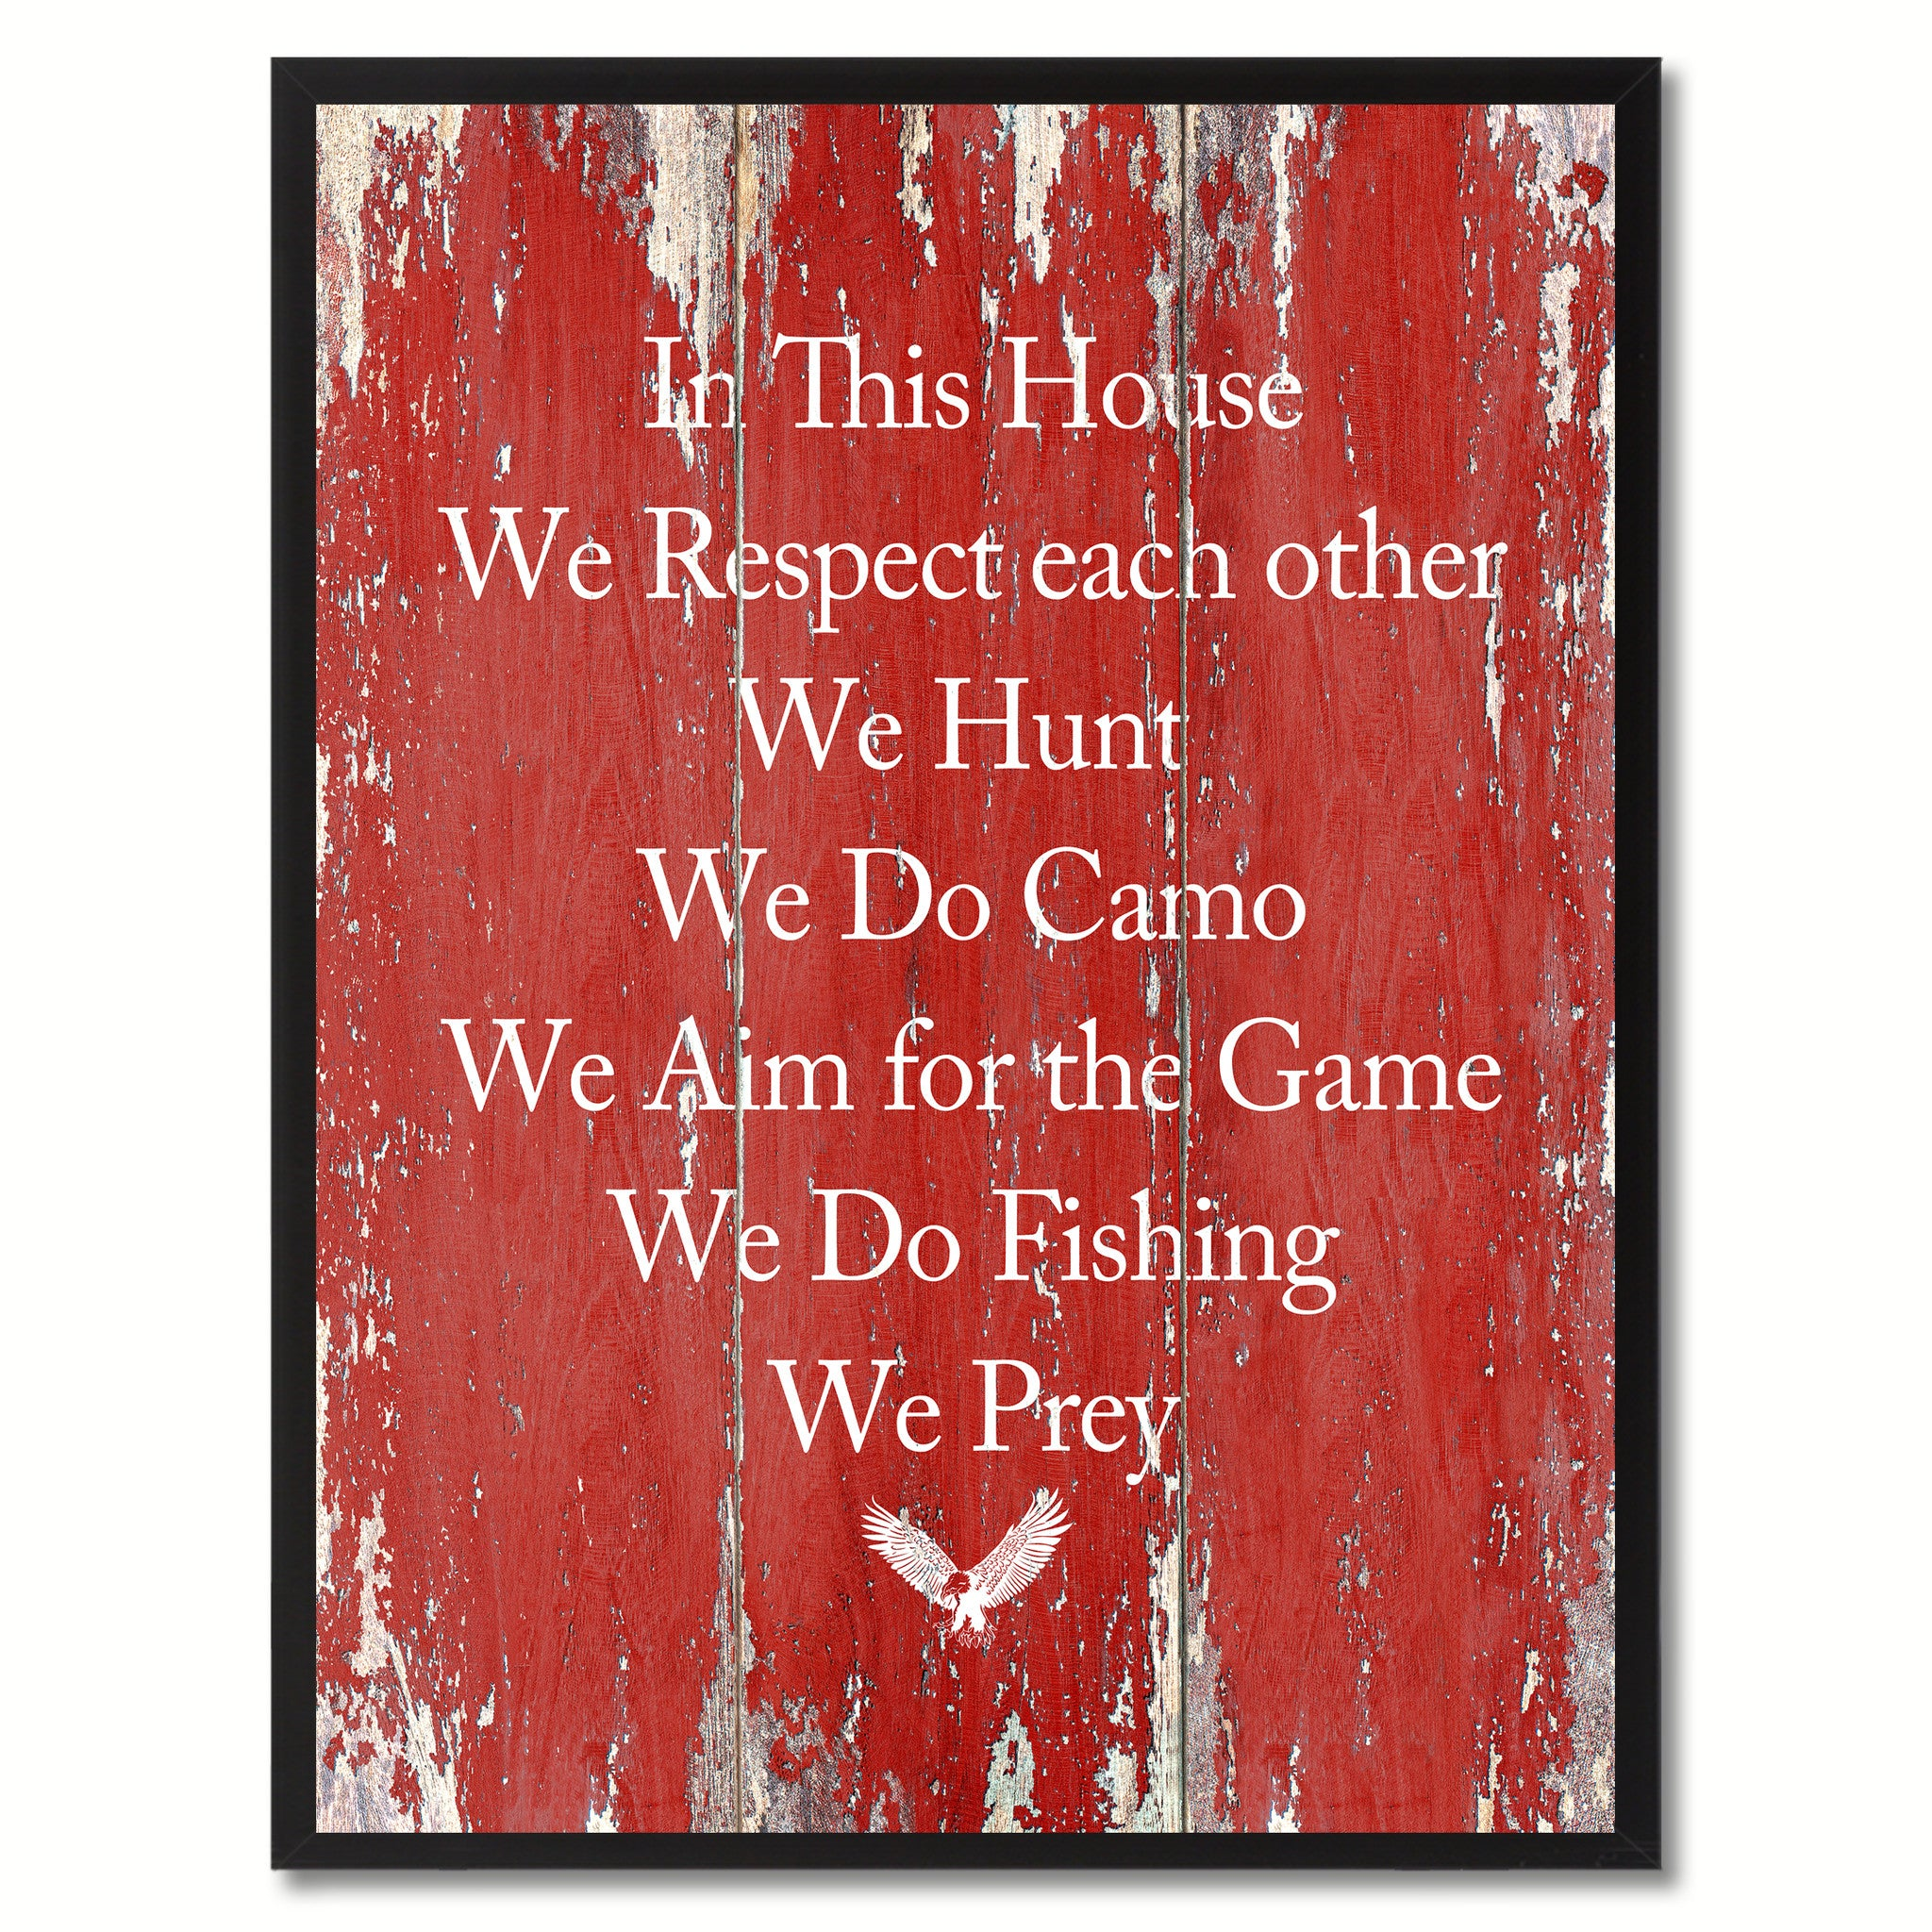 In This House We Respect Each Other Saying Canvas Print, Black Picture Frame Home Decor Wall Art Gifts